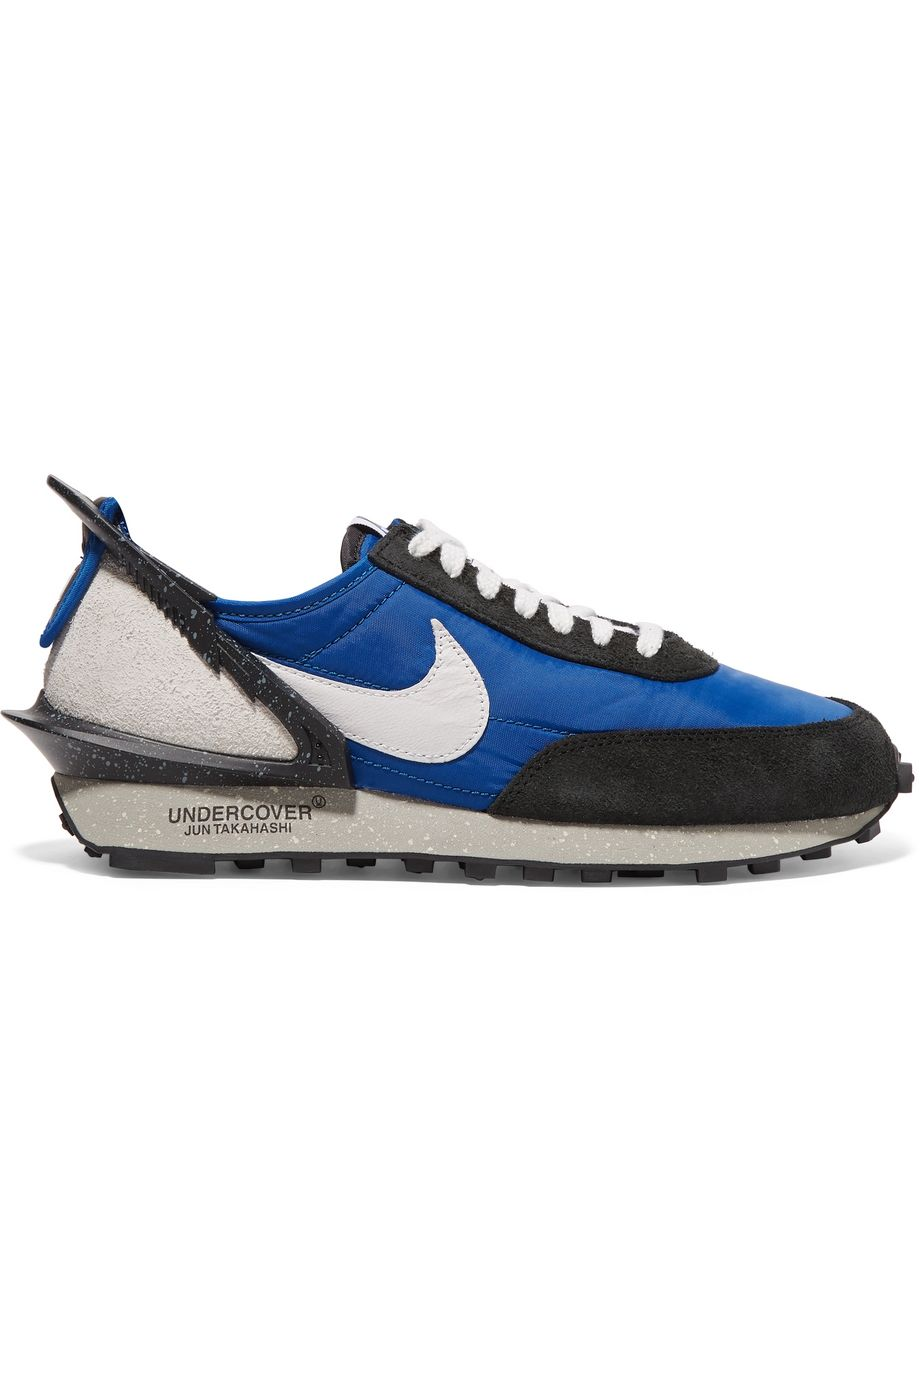 Nike + Undercover Daybreak mesh, suede and leather sneakers